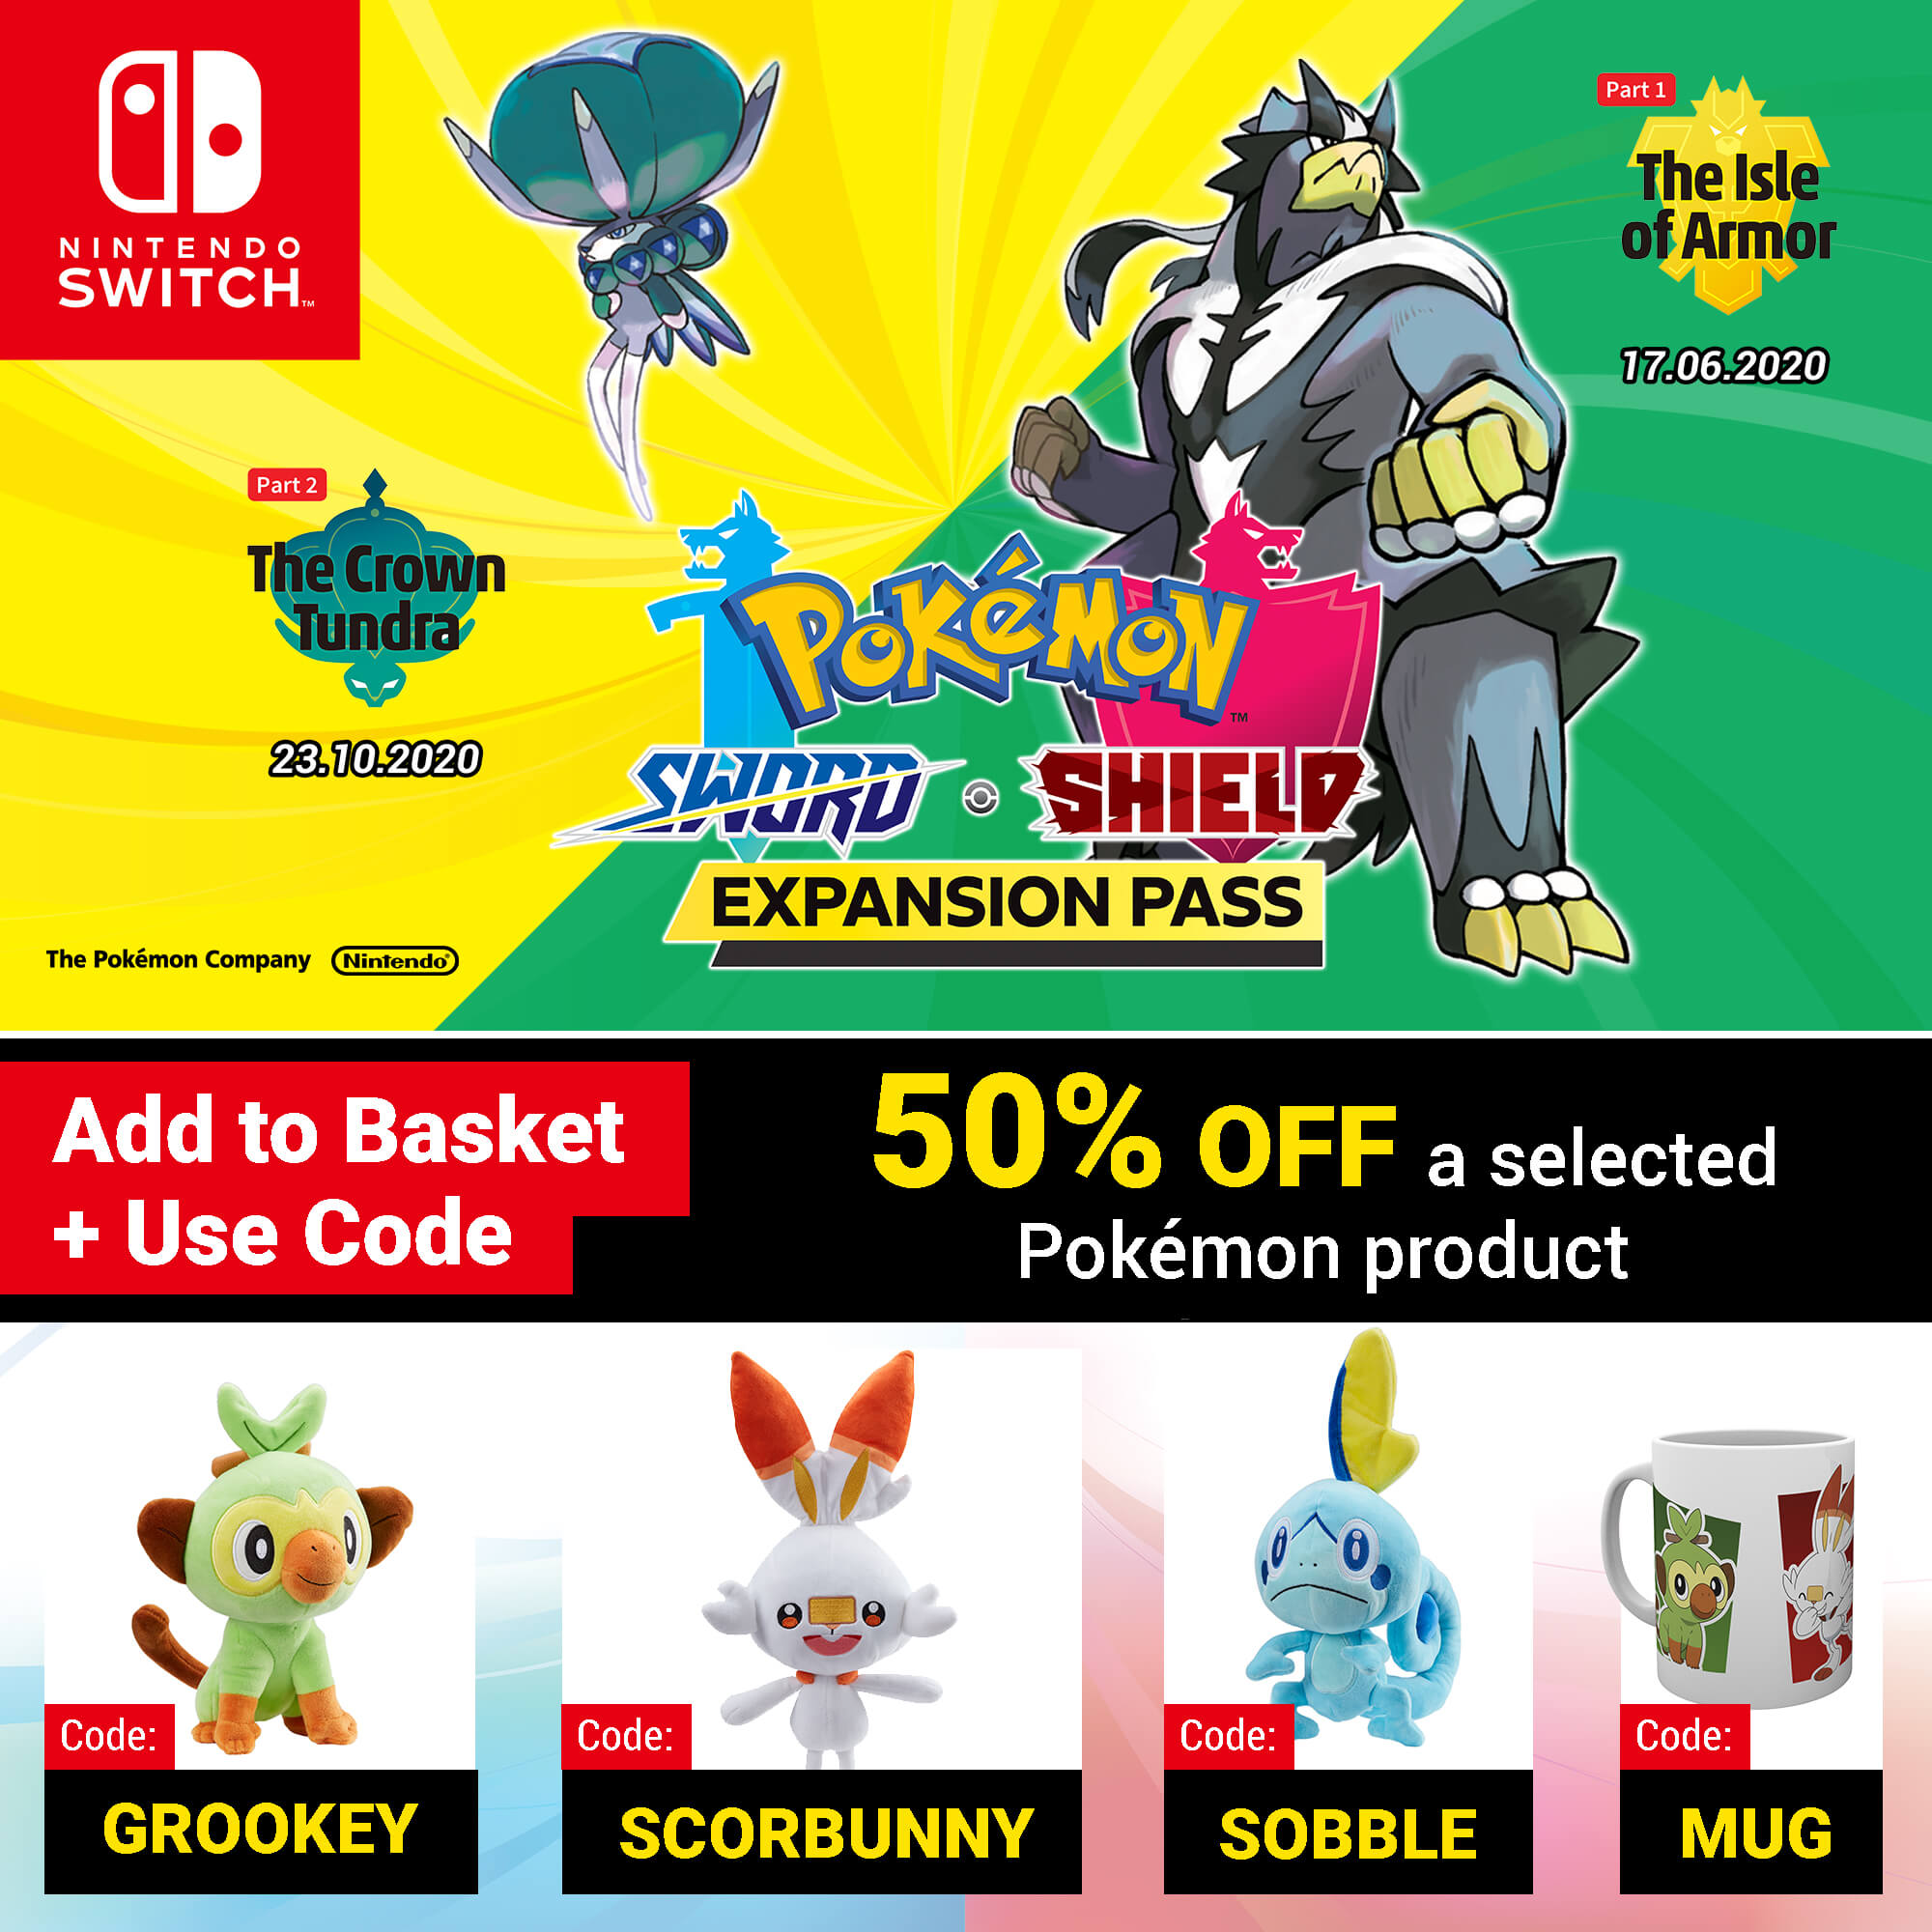 Pokémon Sword and Pokémon Shield - Expansion Pass with 50% off a selected Pokémon product - add to basket and use code